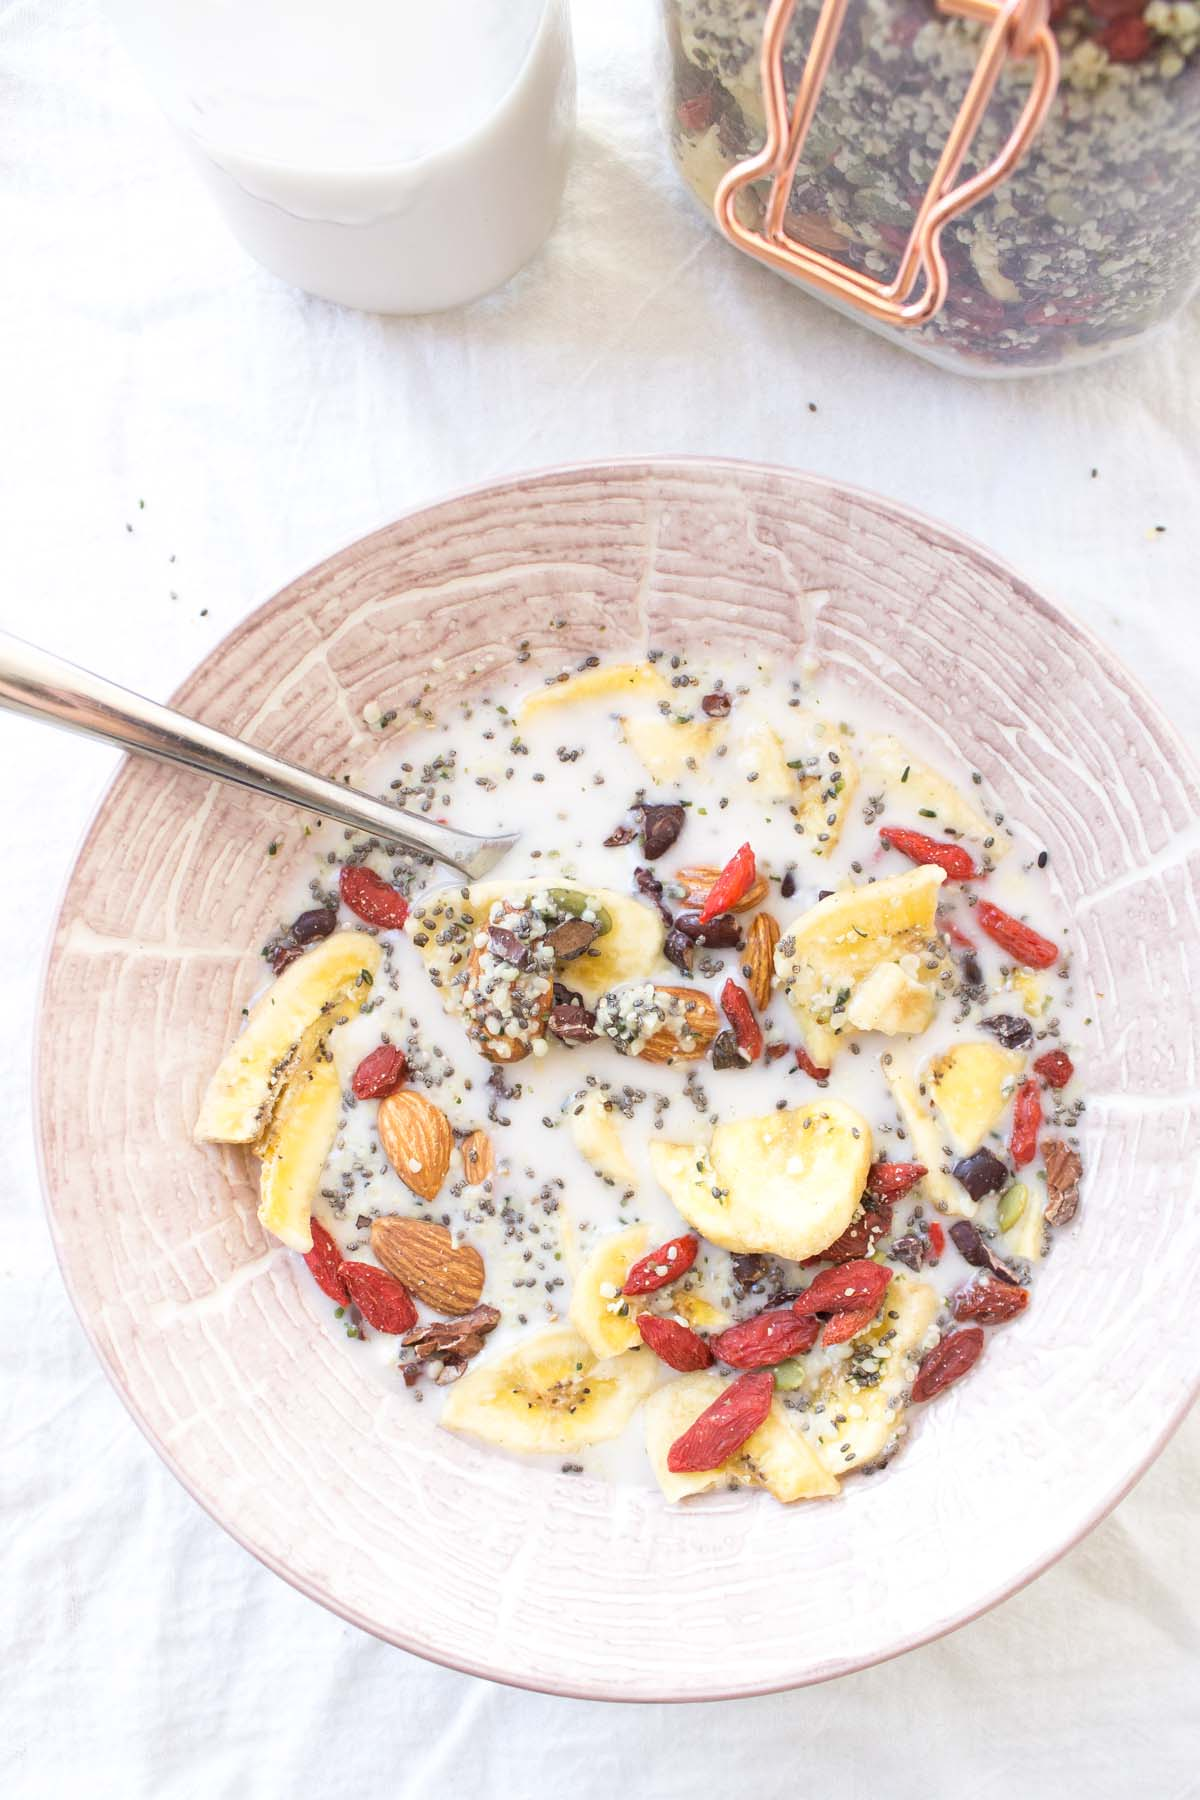 This quick paleo cereal recipe is a great option for rushed mornings!